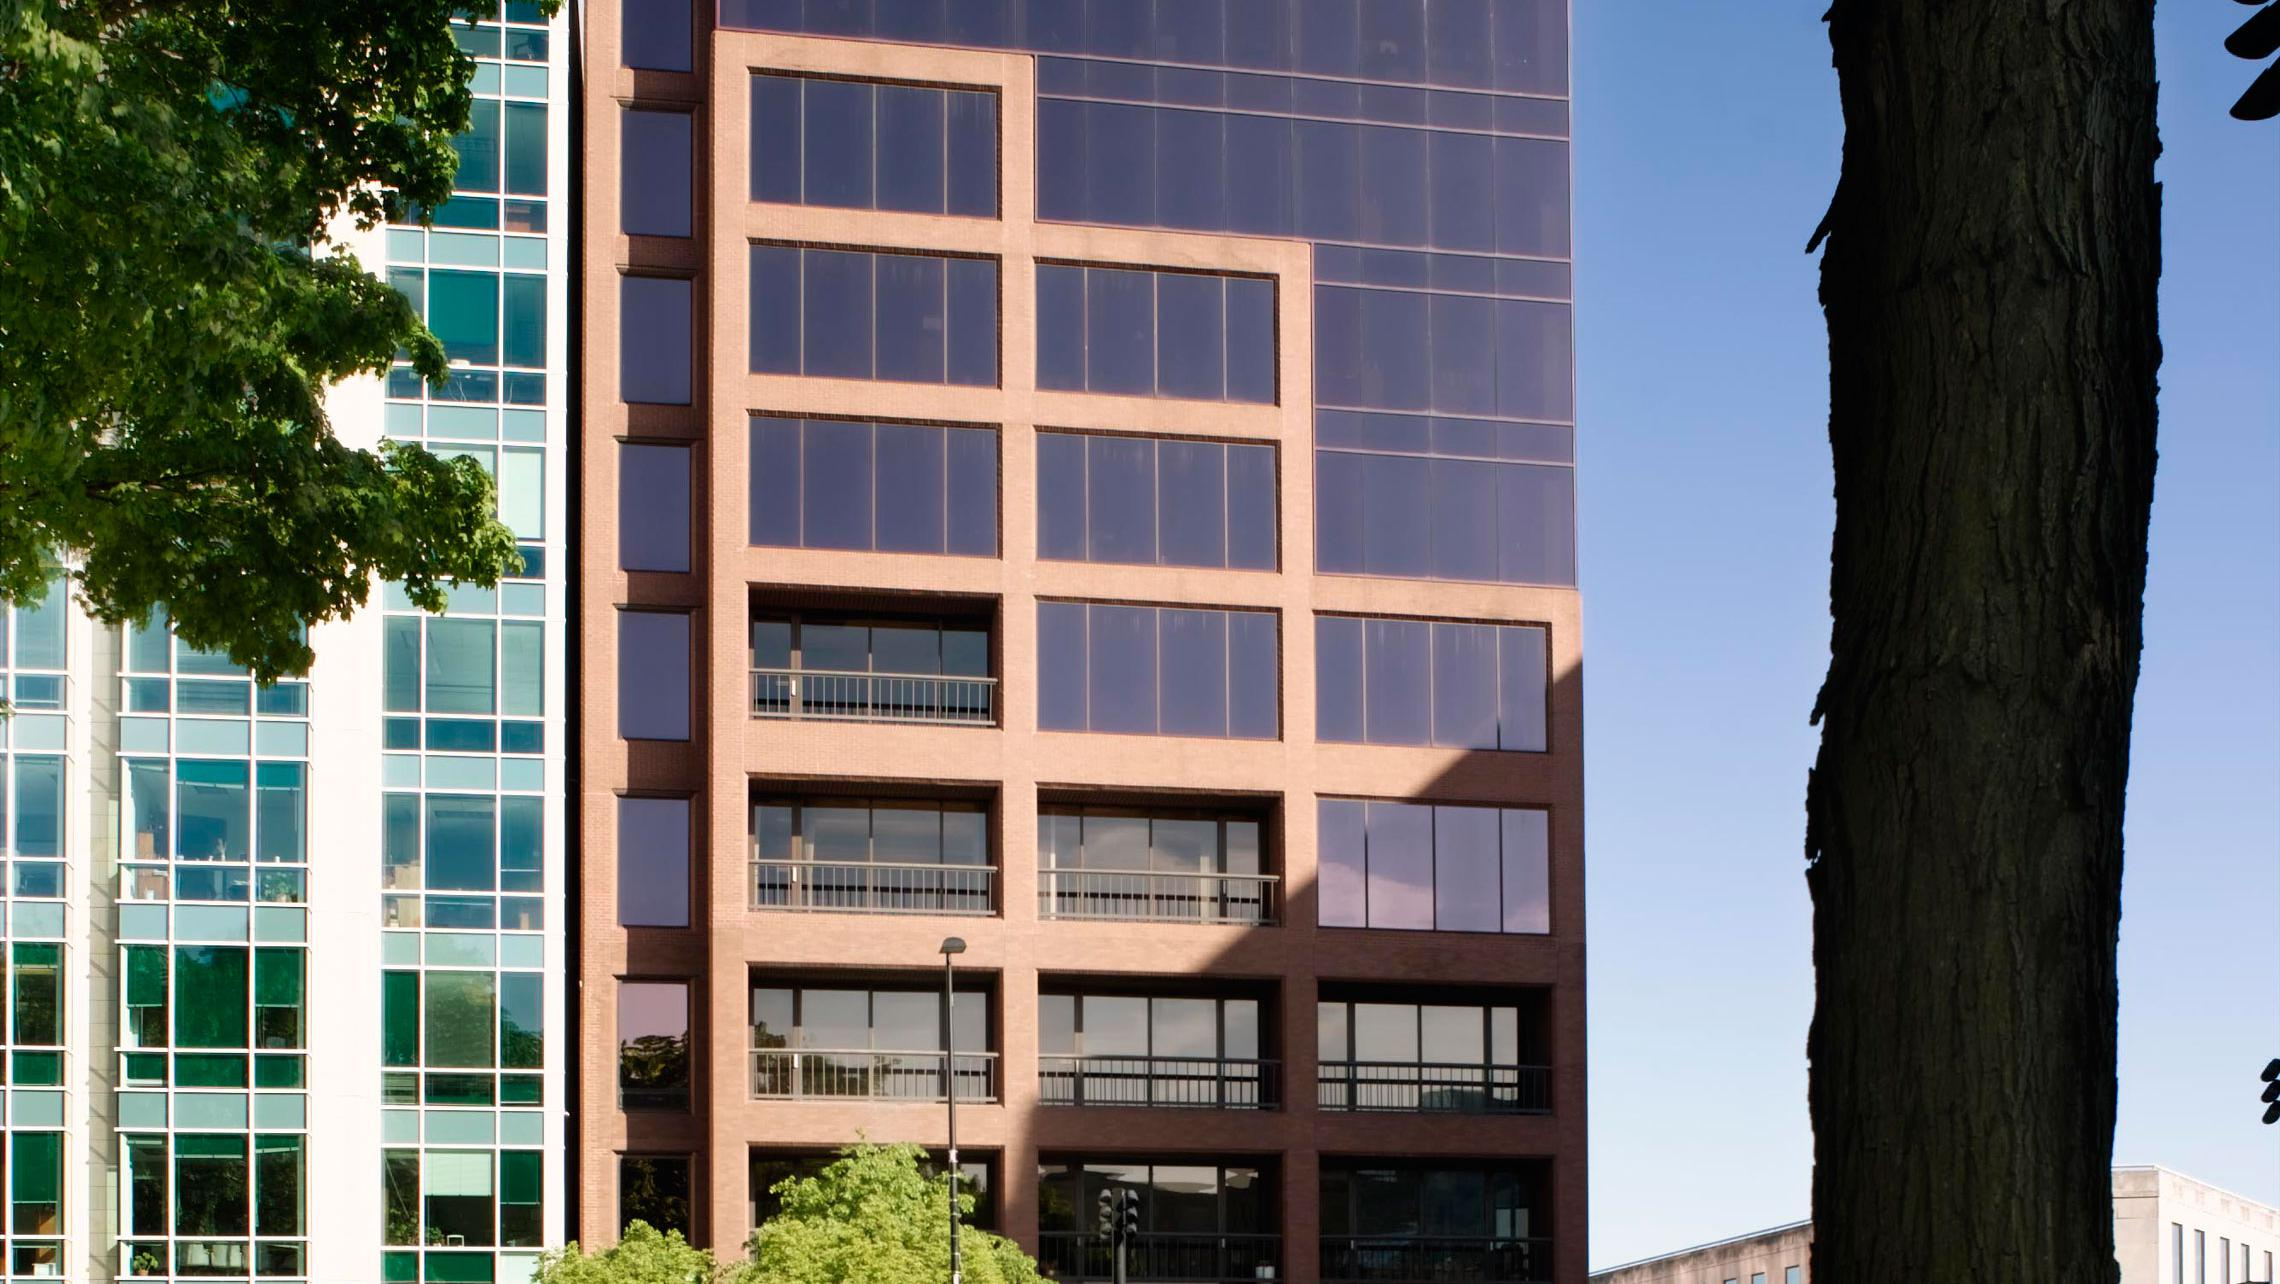 ULI 44 East Mifflin Building on the Capitol Square